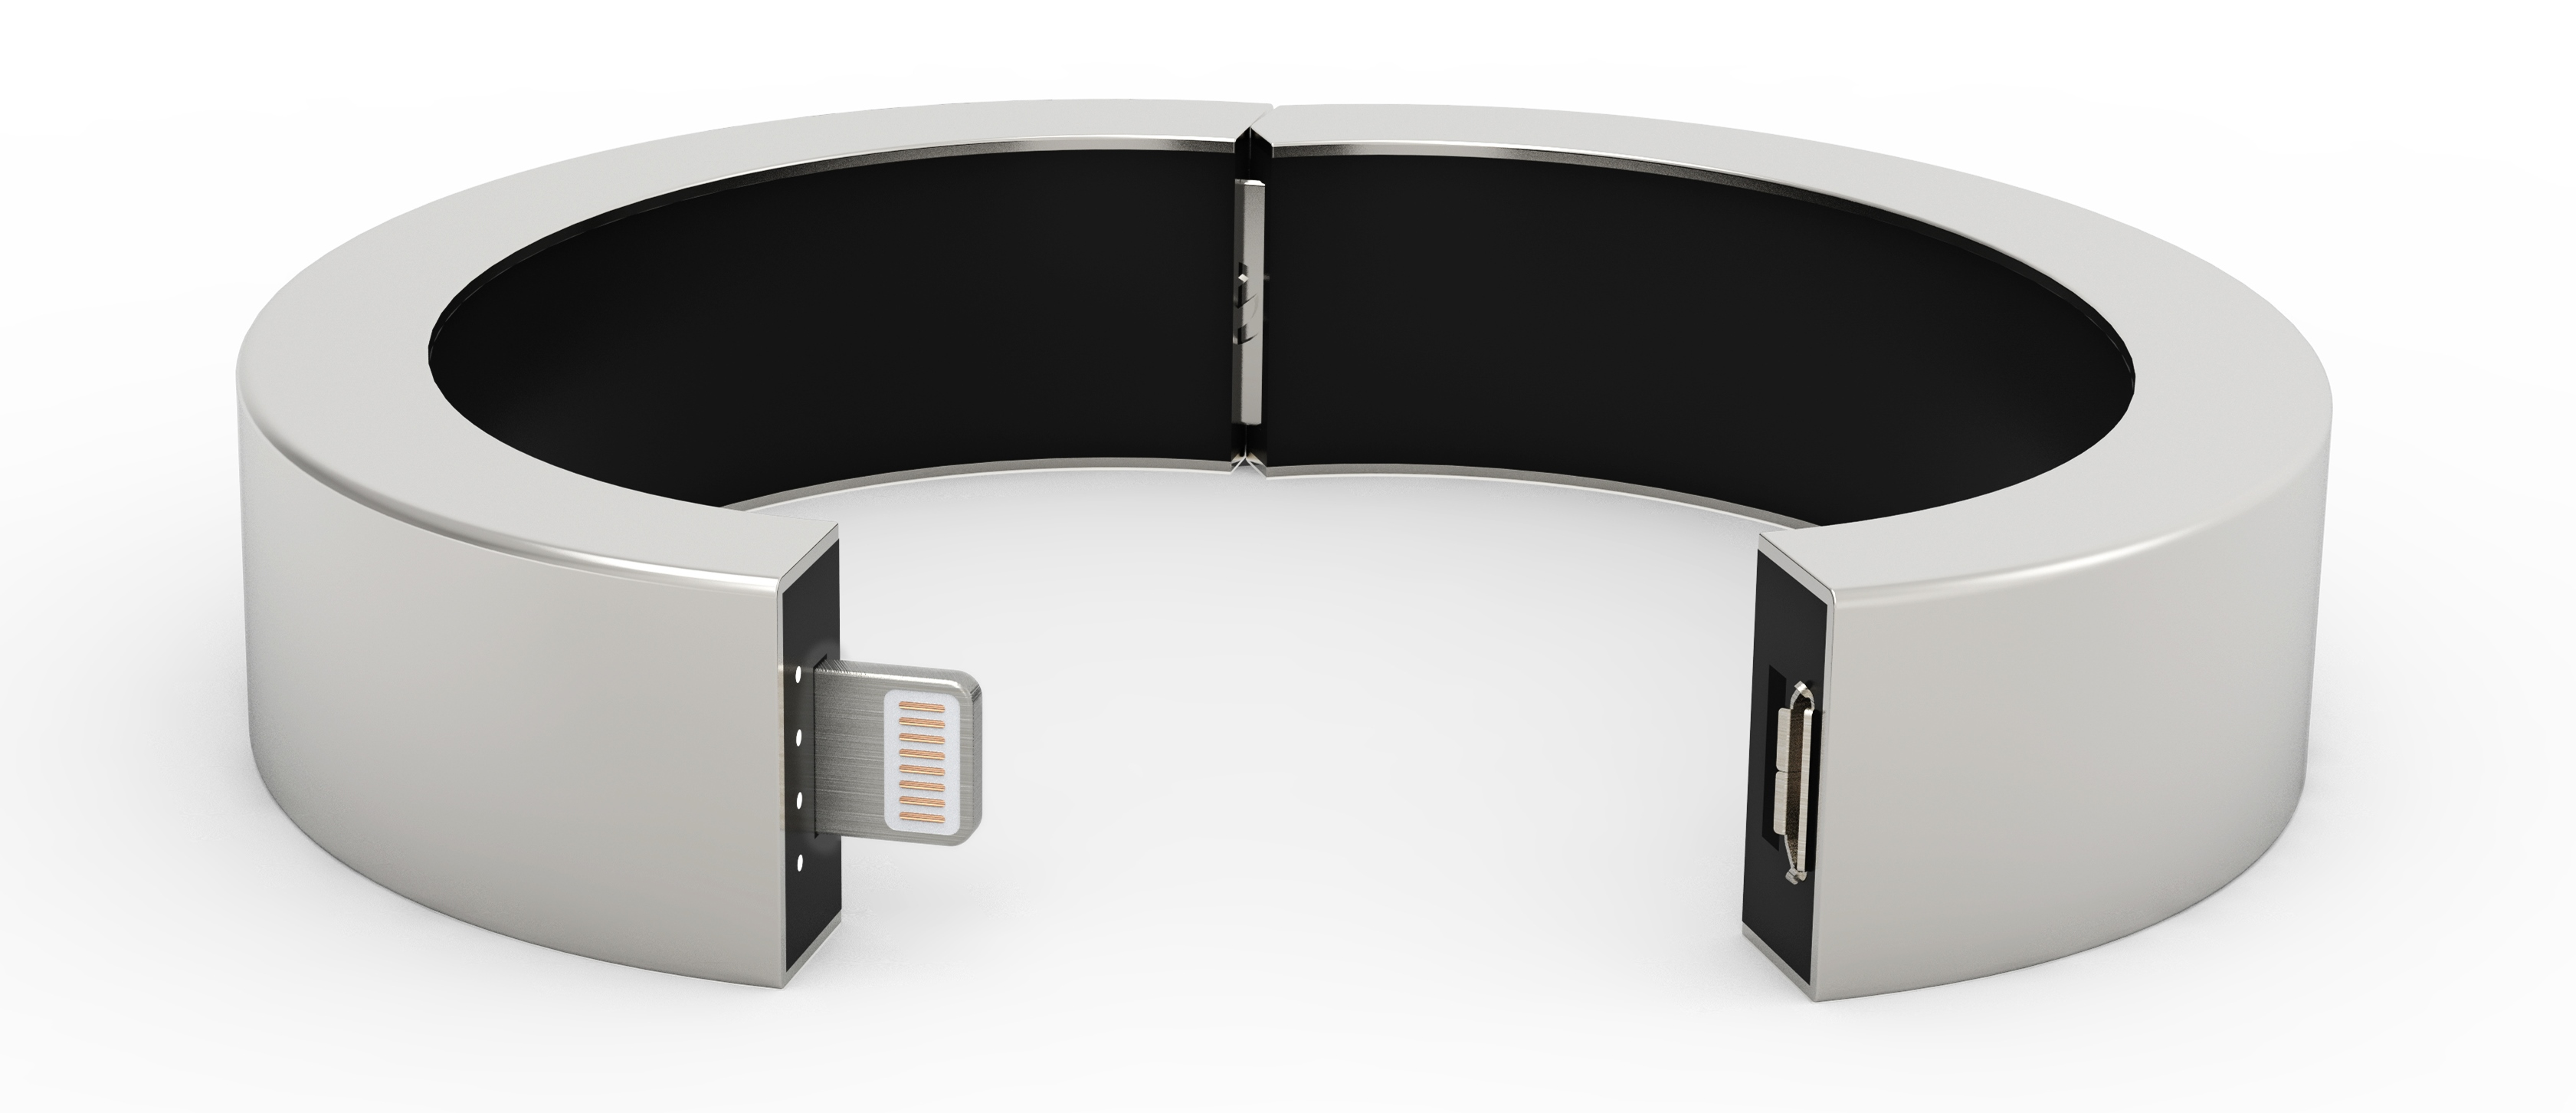 A 'Wearable' That Charges Your Phone